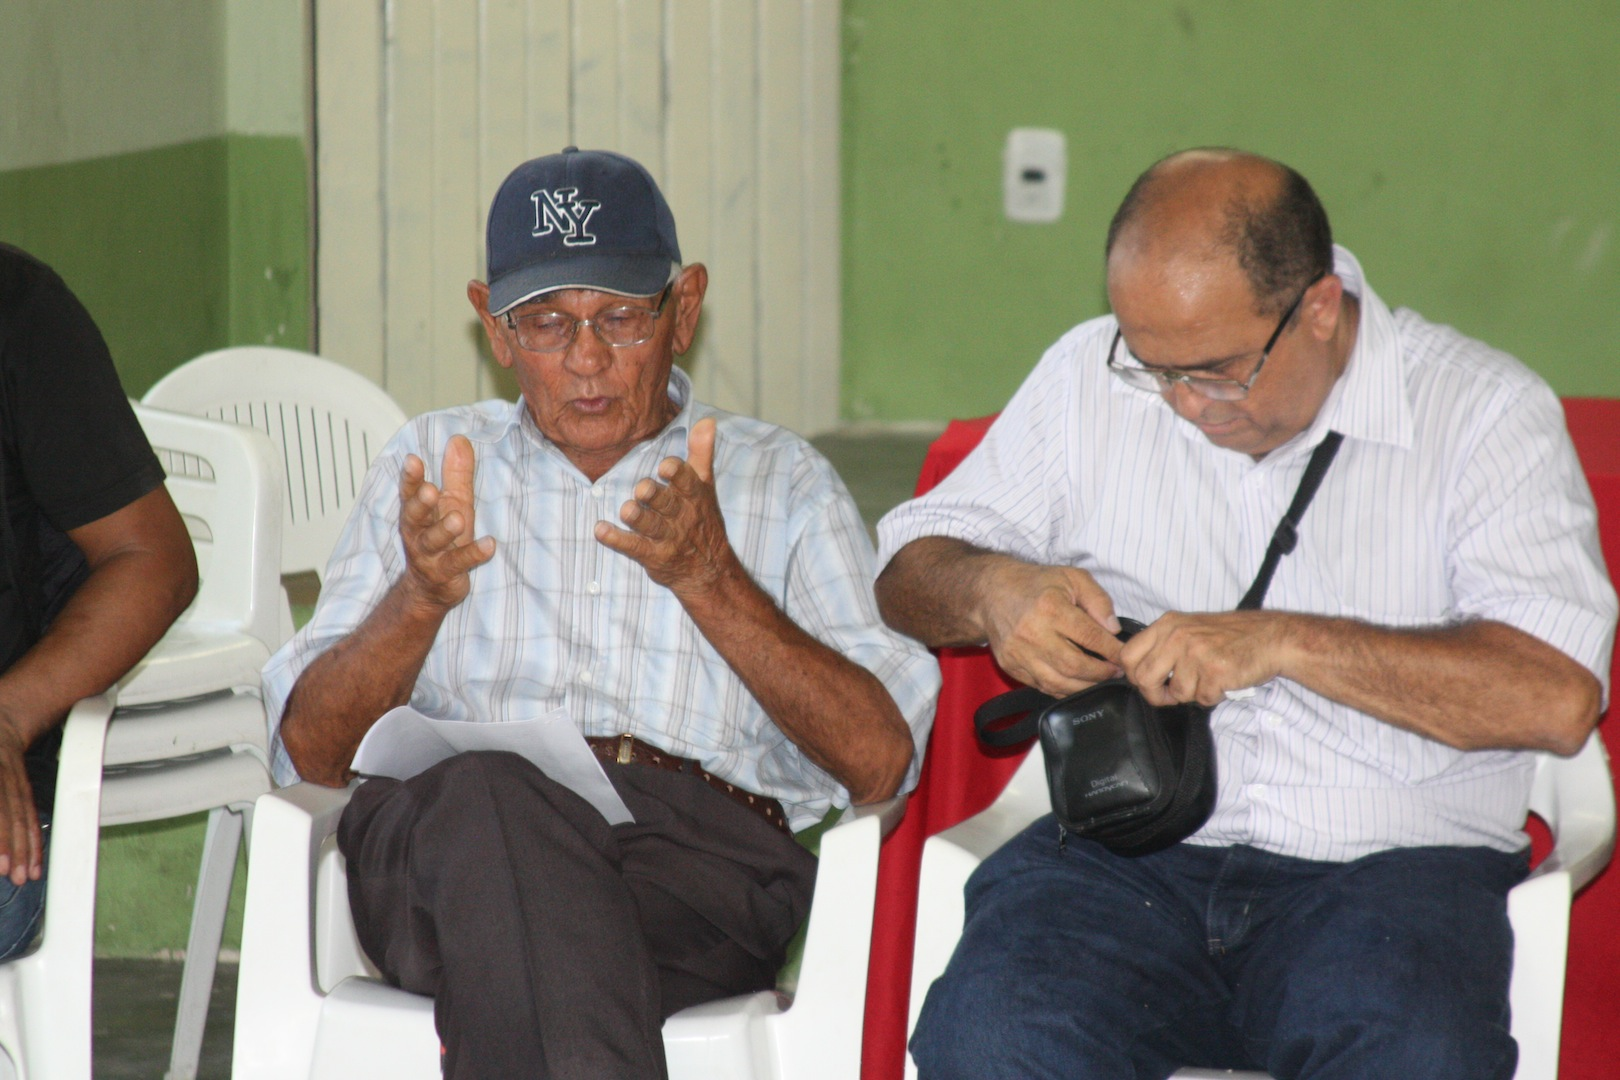 Visit to Mustardinha 7, member of the community's association